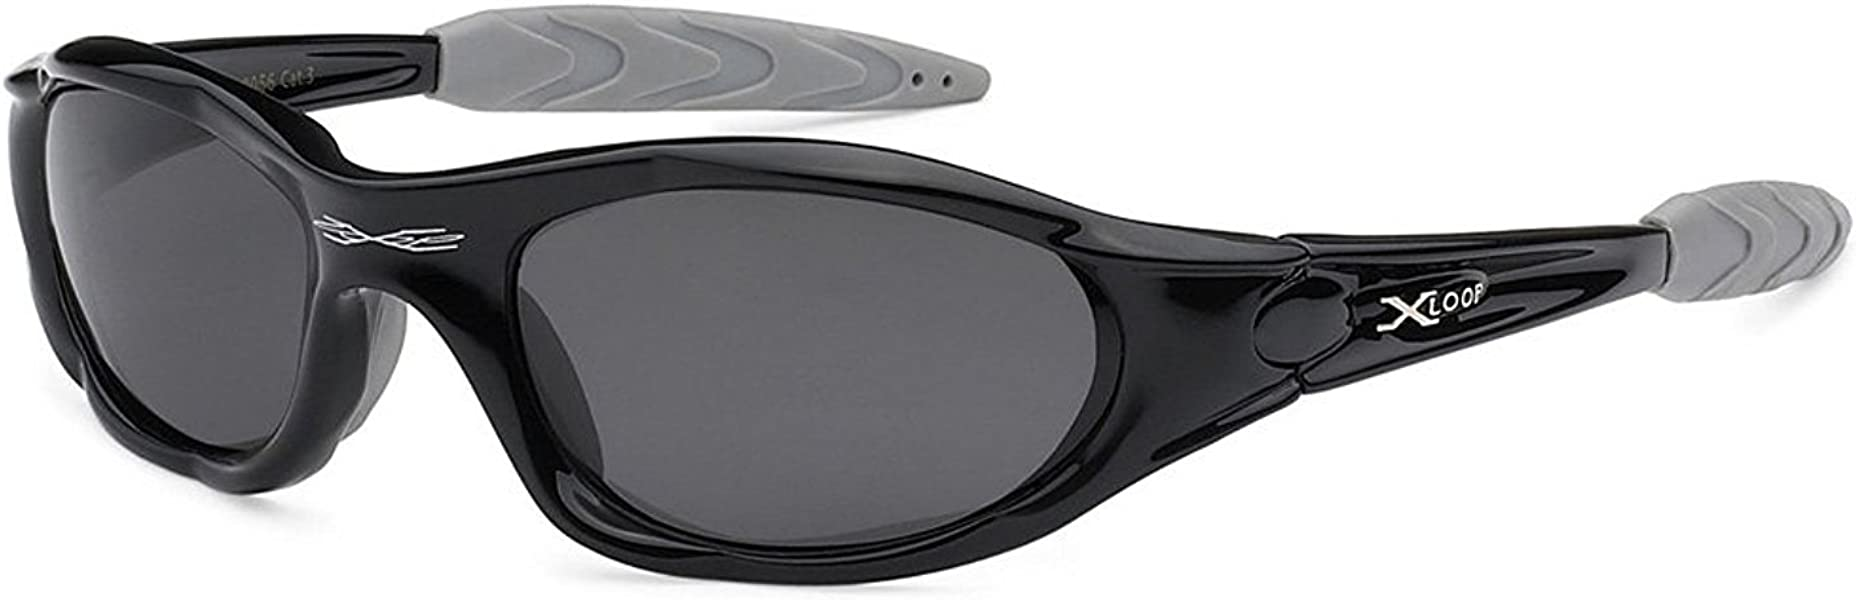 58b8d019ac96 X-loop Polarized Mens Action Sports Fishing Sunglasses - Several Colors  (Black)